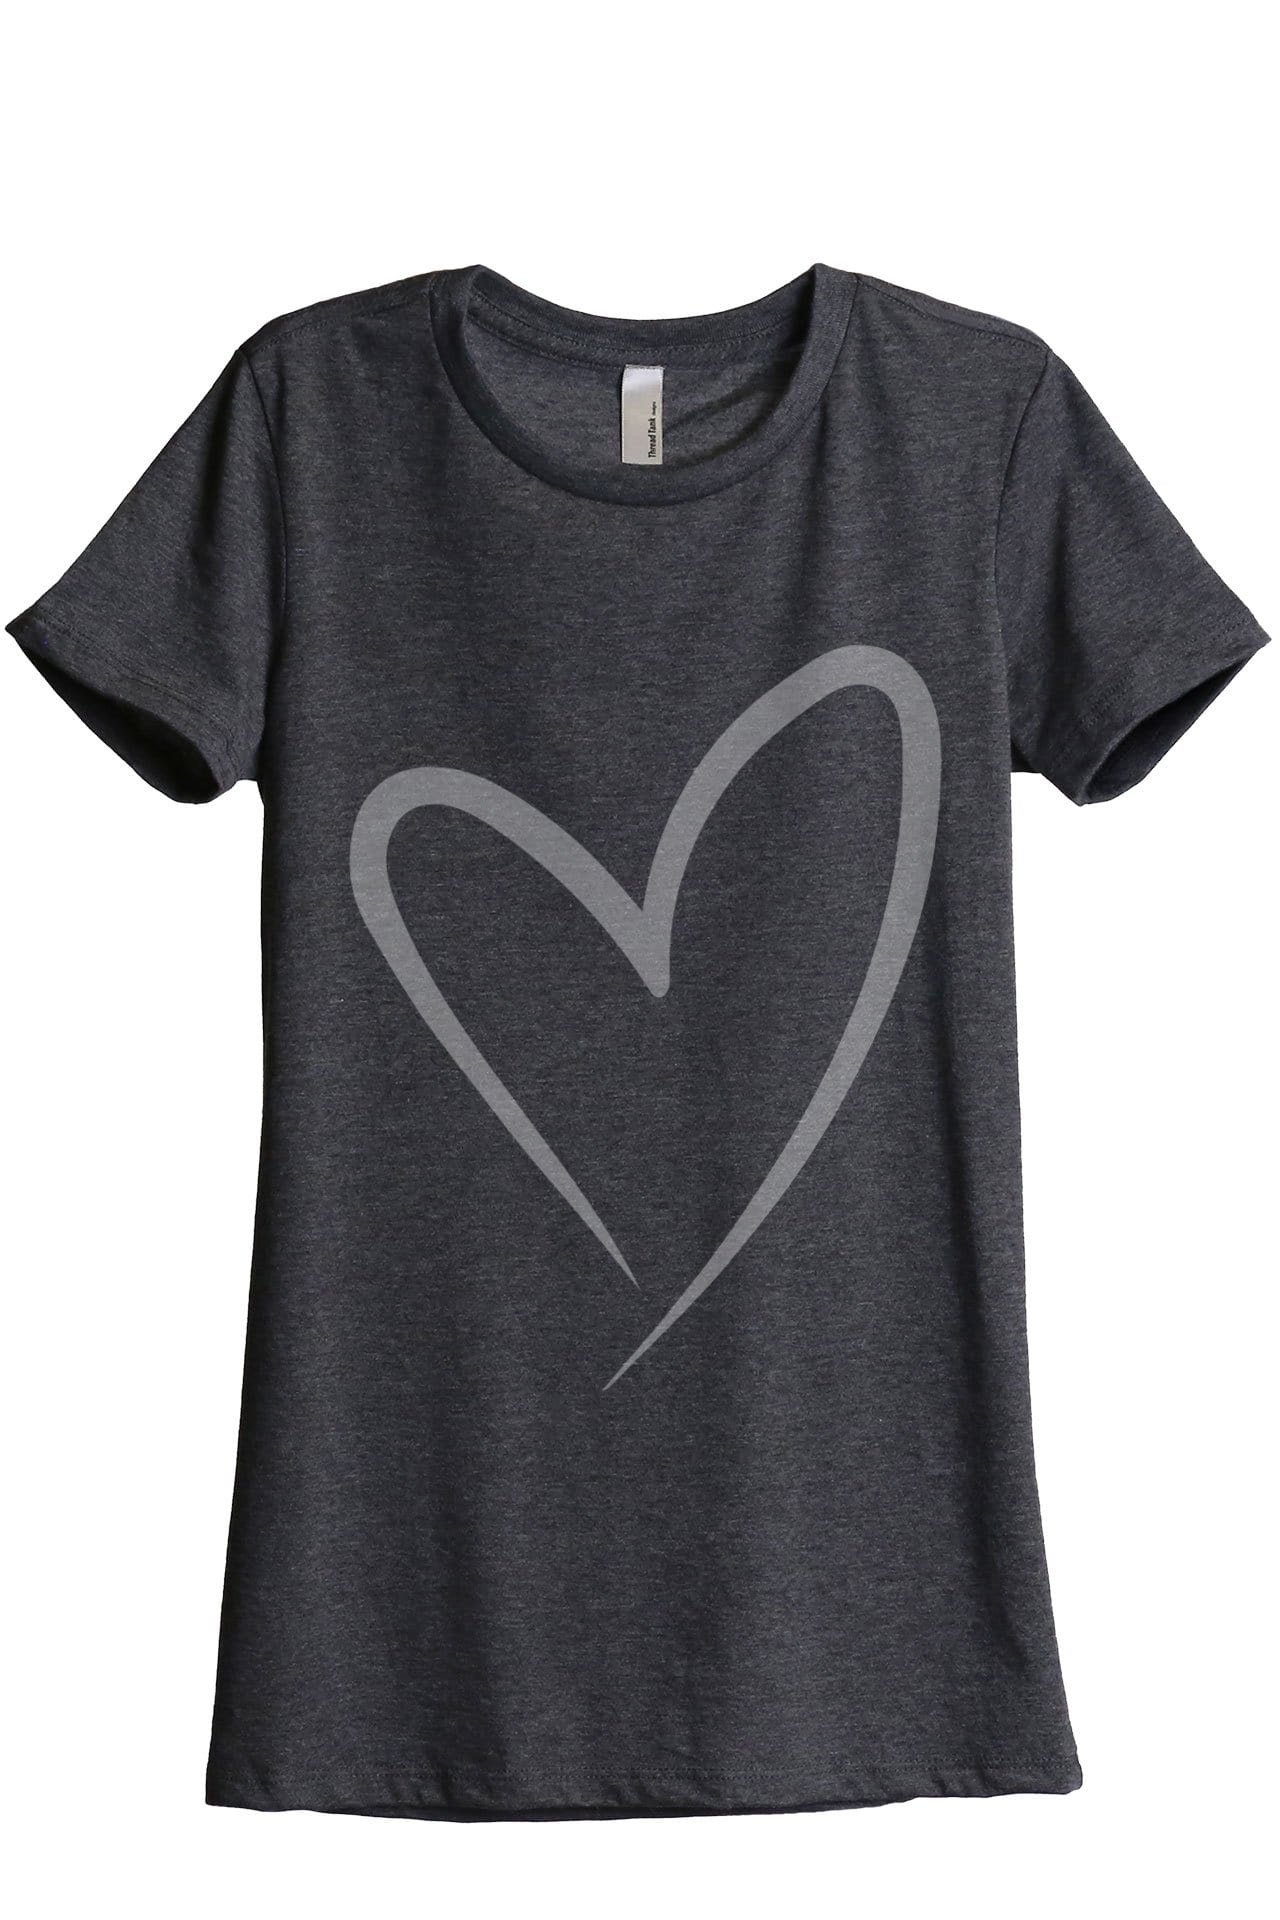 Simply Heart Women Charcoal Grey Relaxed Crew T-Shirt Tee Top